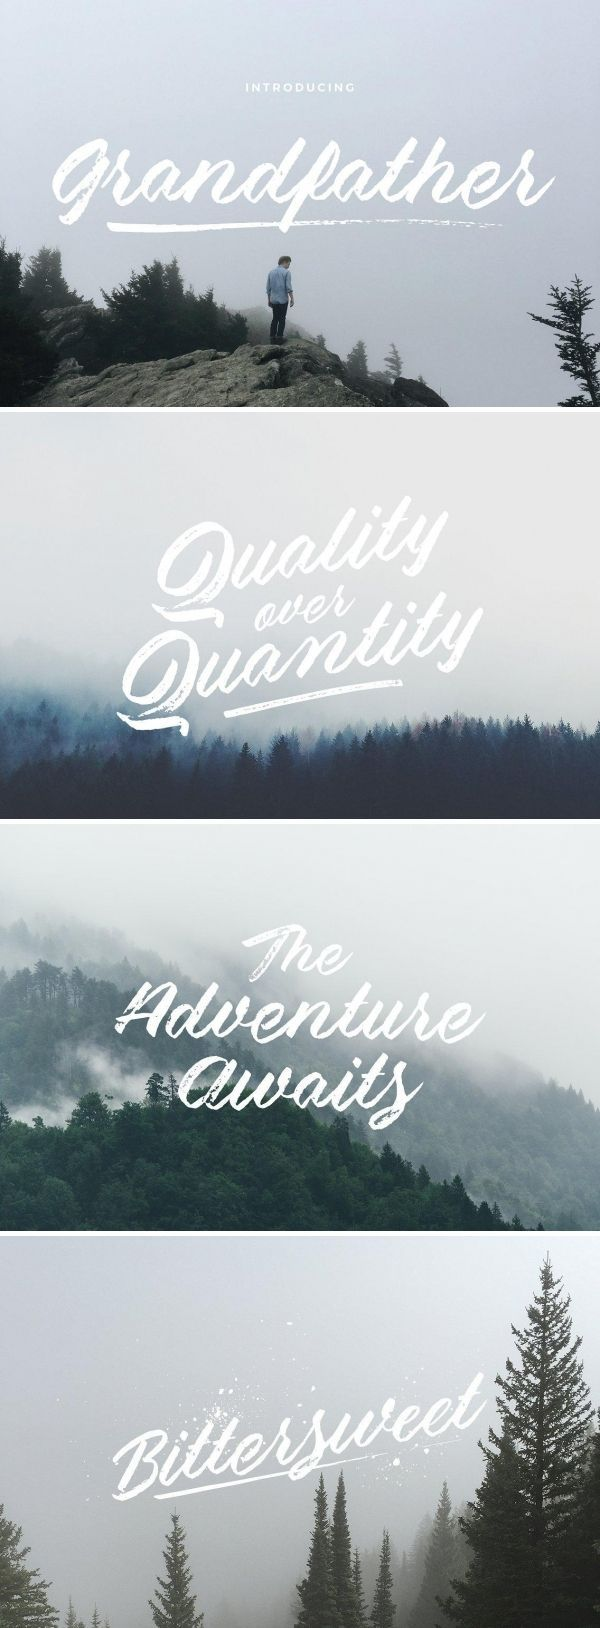 Grandfather is a handwritten brush script font. It takes inspiration from Grandfather Mountain in North Carolina. (it's also named after it!) #font #typeface #typegang #typespire #typematters #type #fontdesign #typography #graphicdesign #typographyinspire #handmadefont #creativemarket #ad